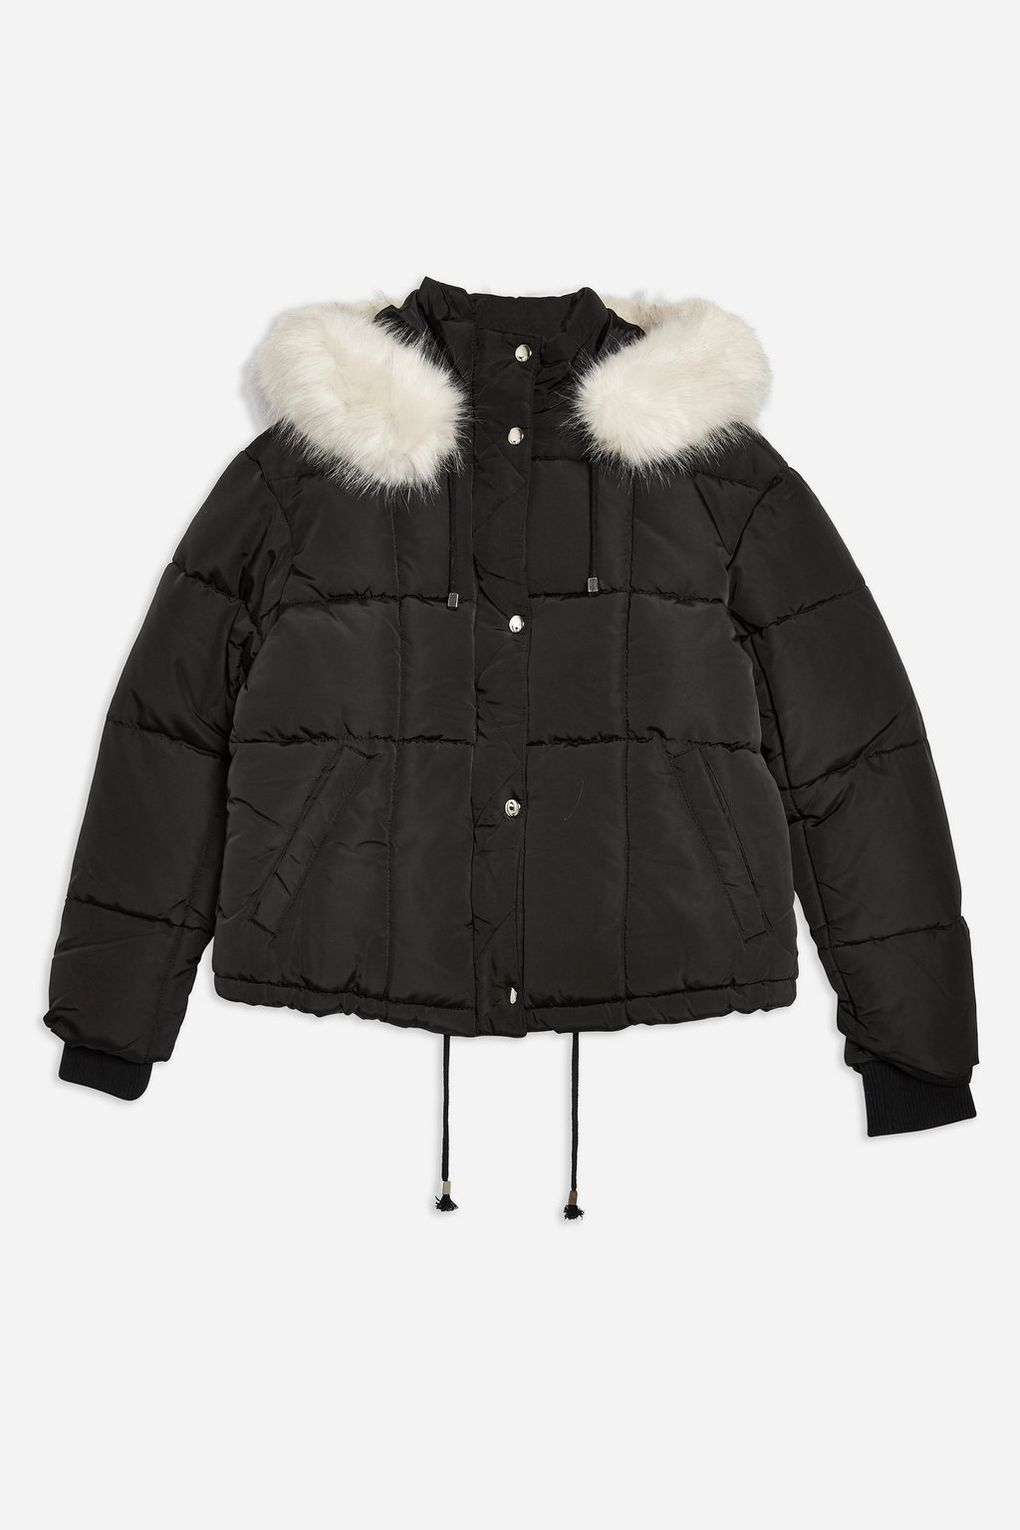 Petite Faux Fur Lined Quilted Puffer Jacket Jackets Coats Clothing Topshop Usa Quilted Puffer Jacket Puffer Jacket Women Cold Wear [ 1530 x 1020 Pixel ]